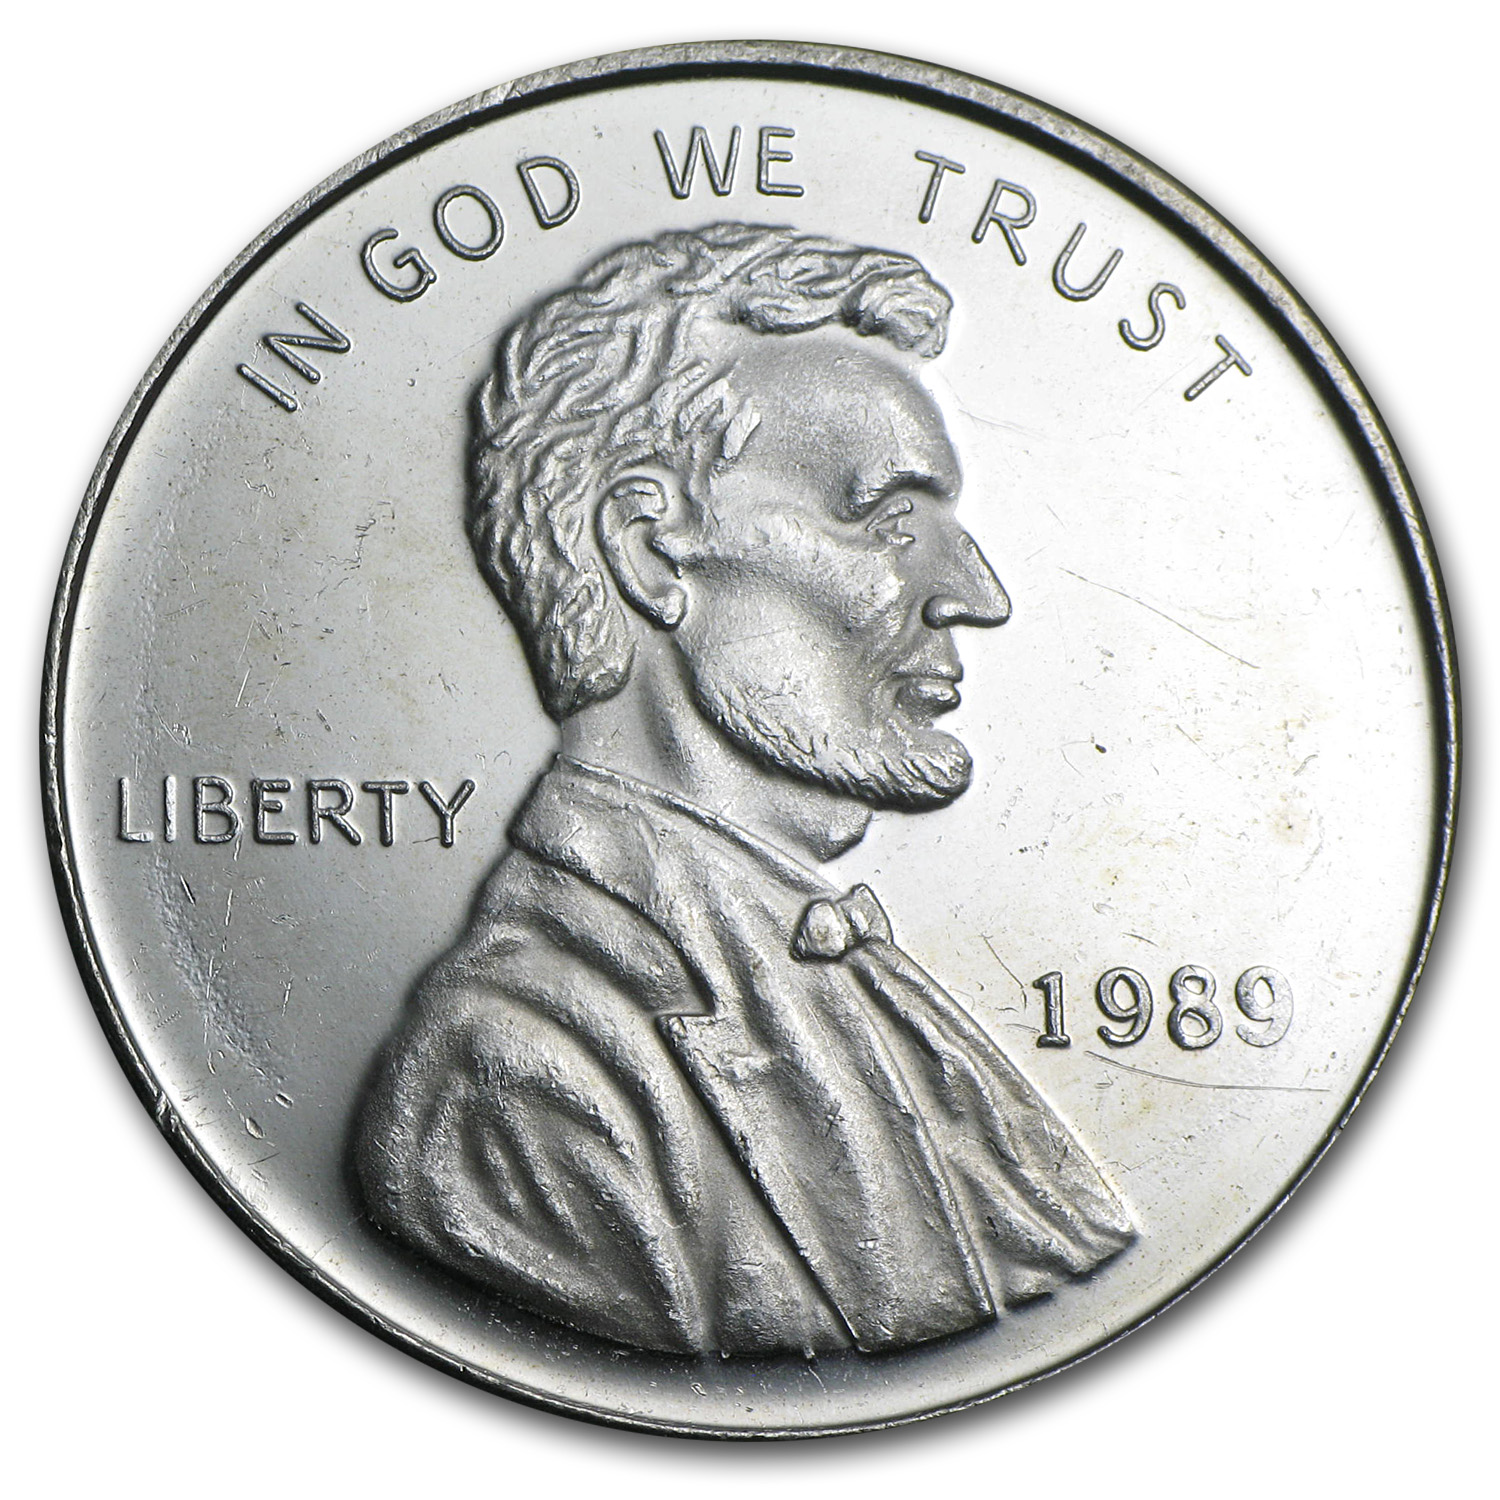 1 oz Silver Rounds - Lincoln Cent (Replica)